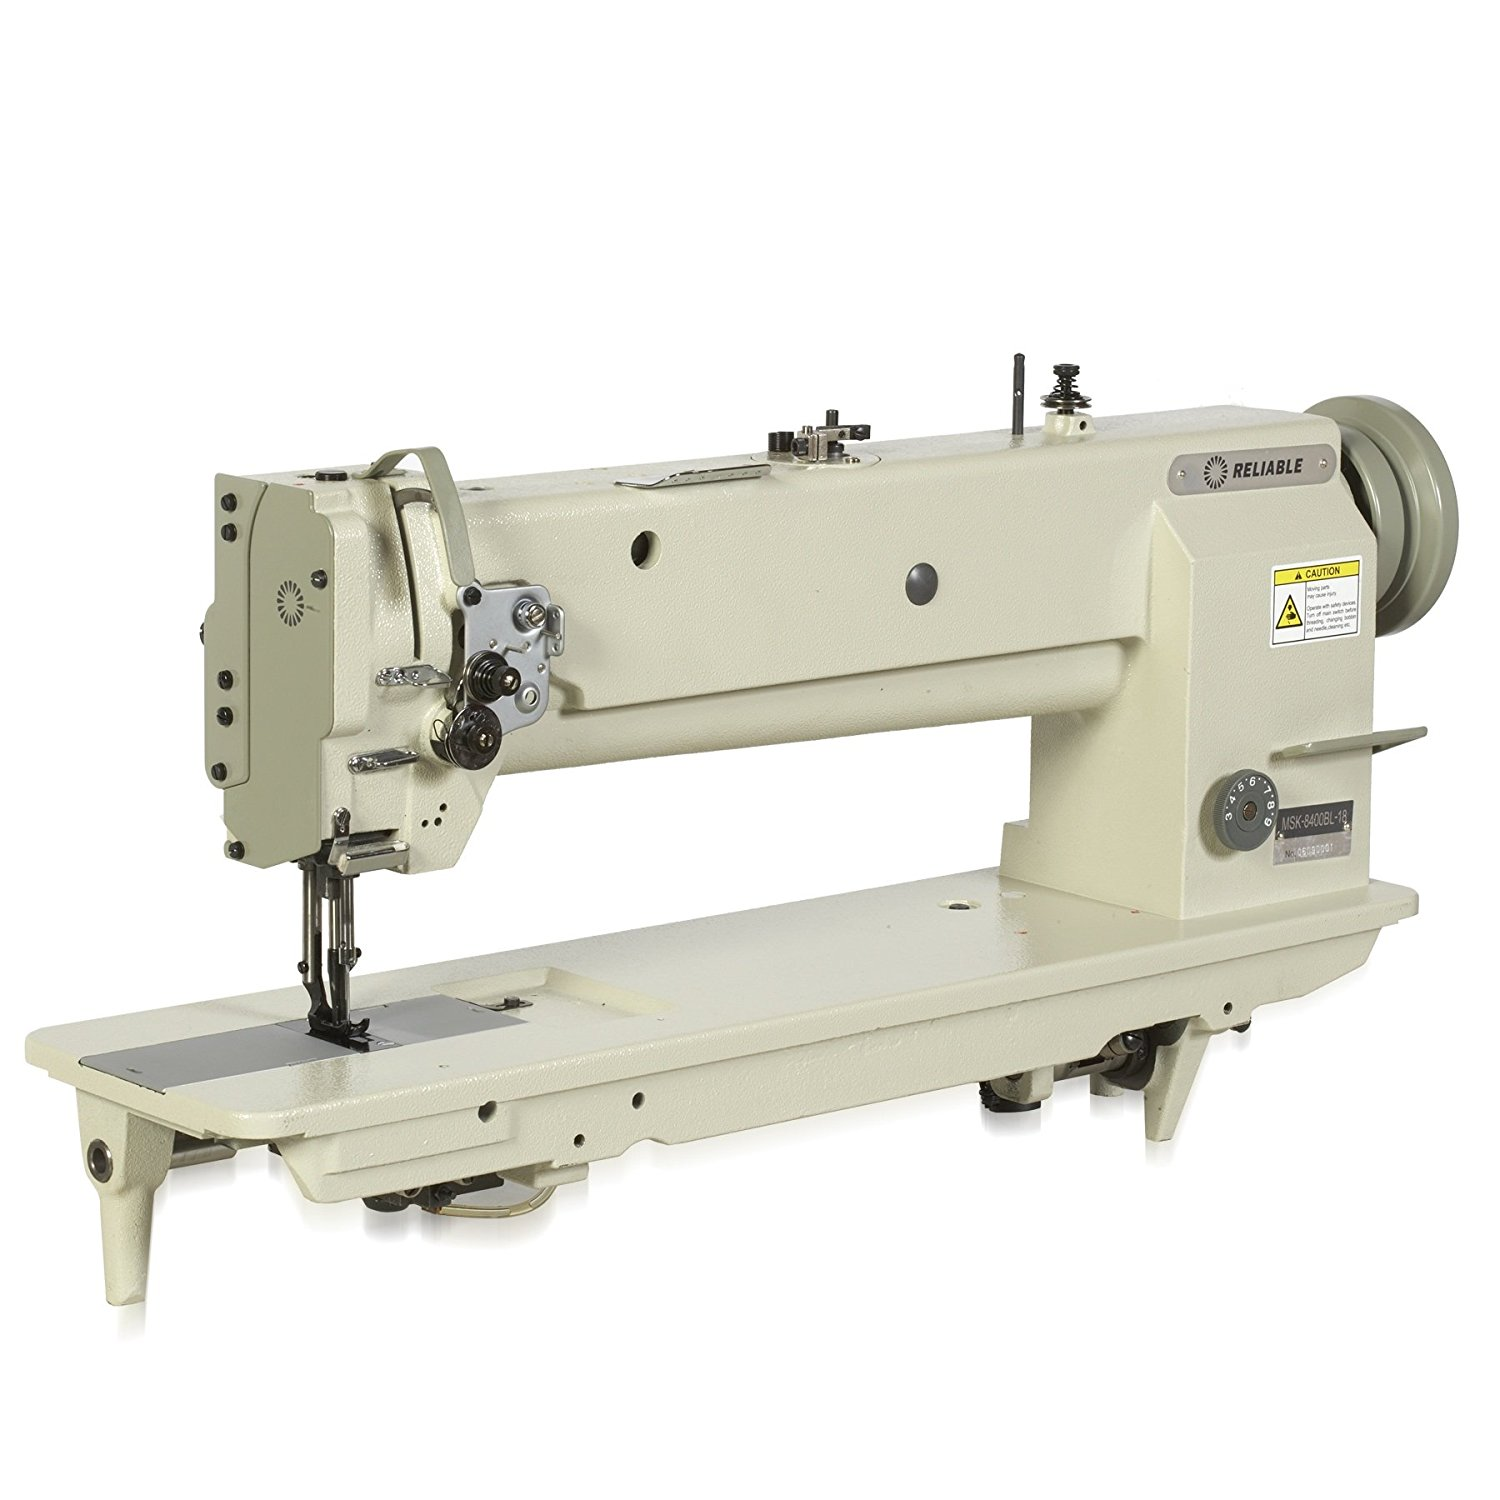 a quilt sewing purchase custom arm machine machines best quilting reviews watch use to long